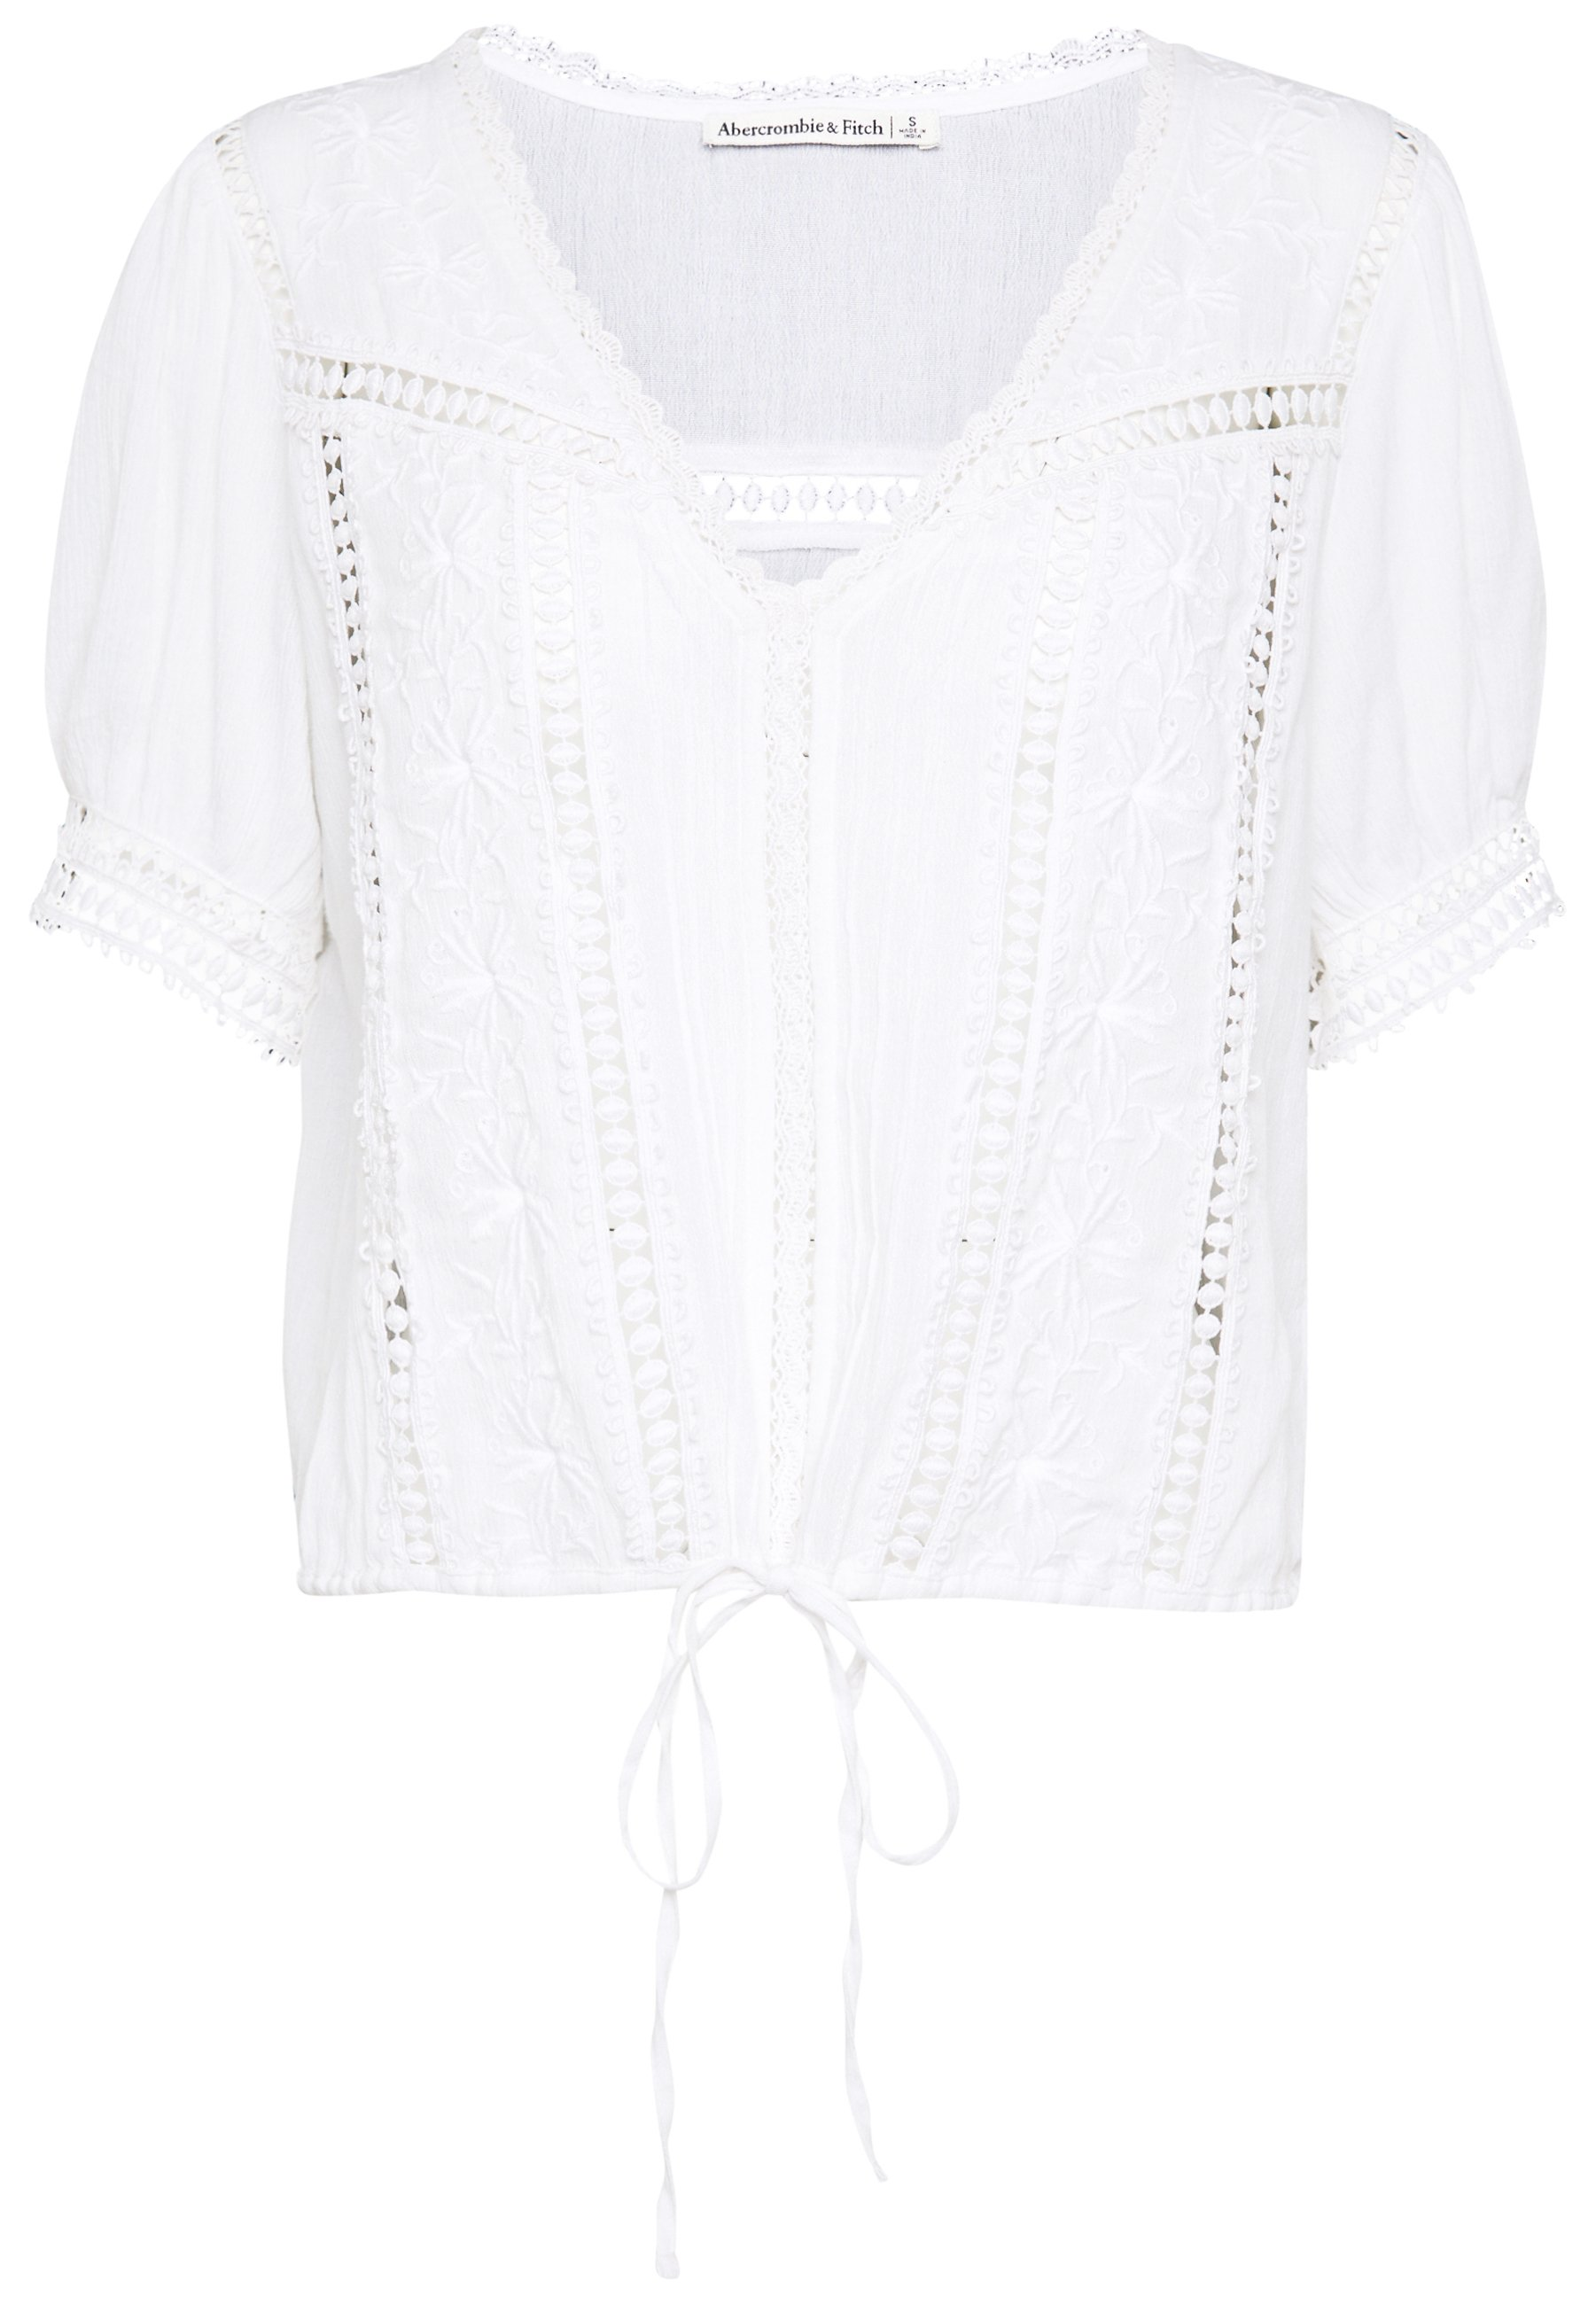 Abercrombie & Fitch Blouse - White